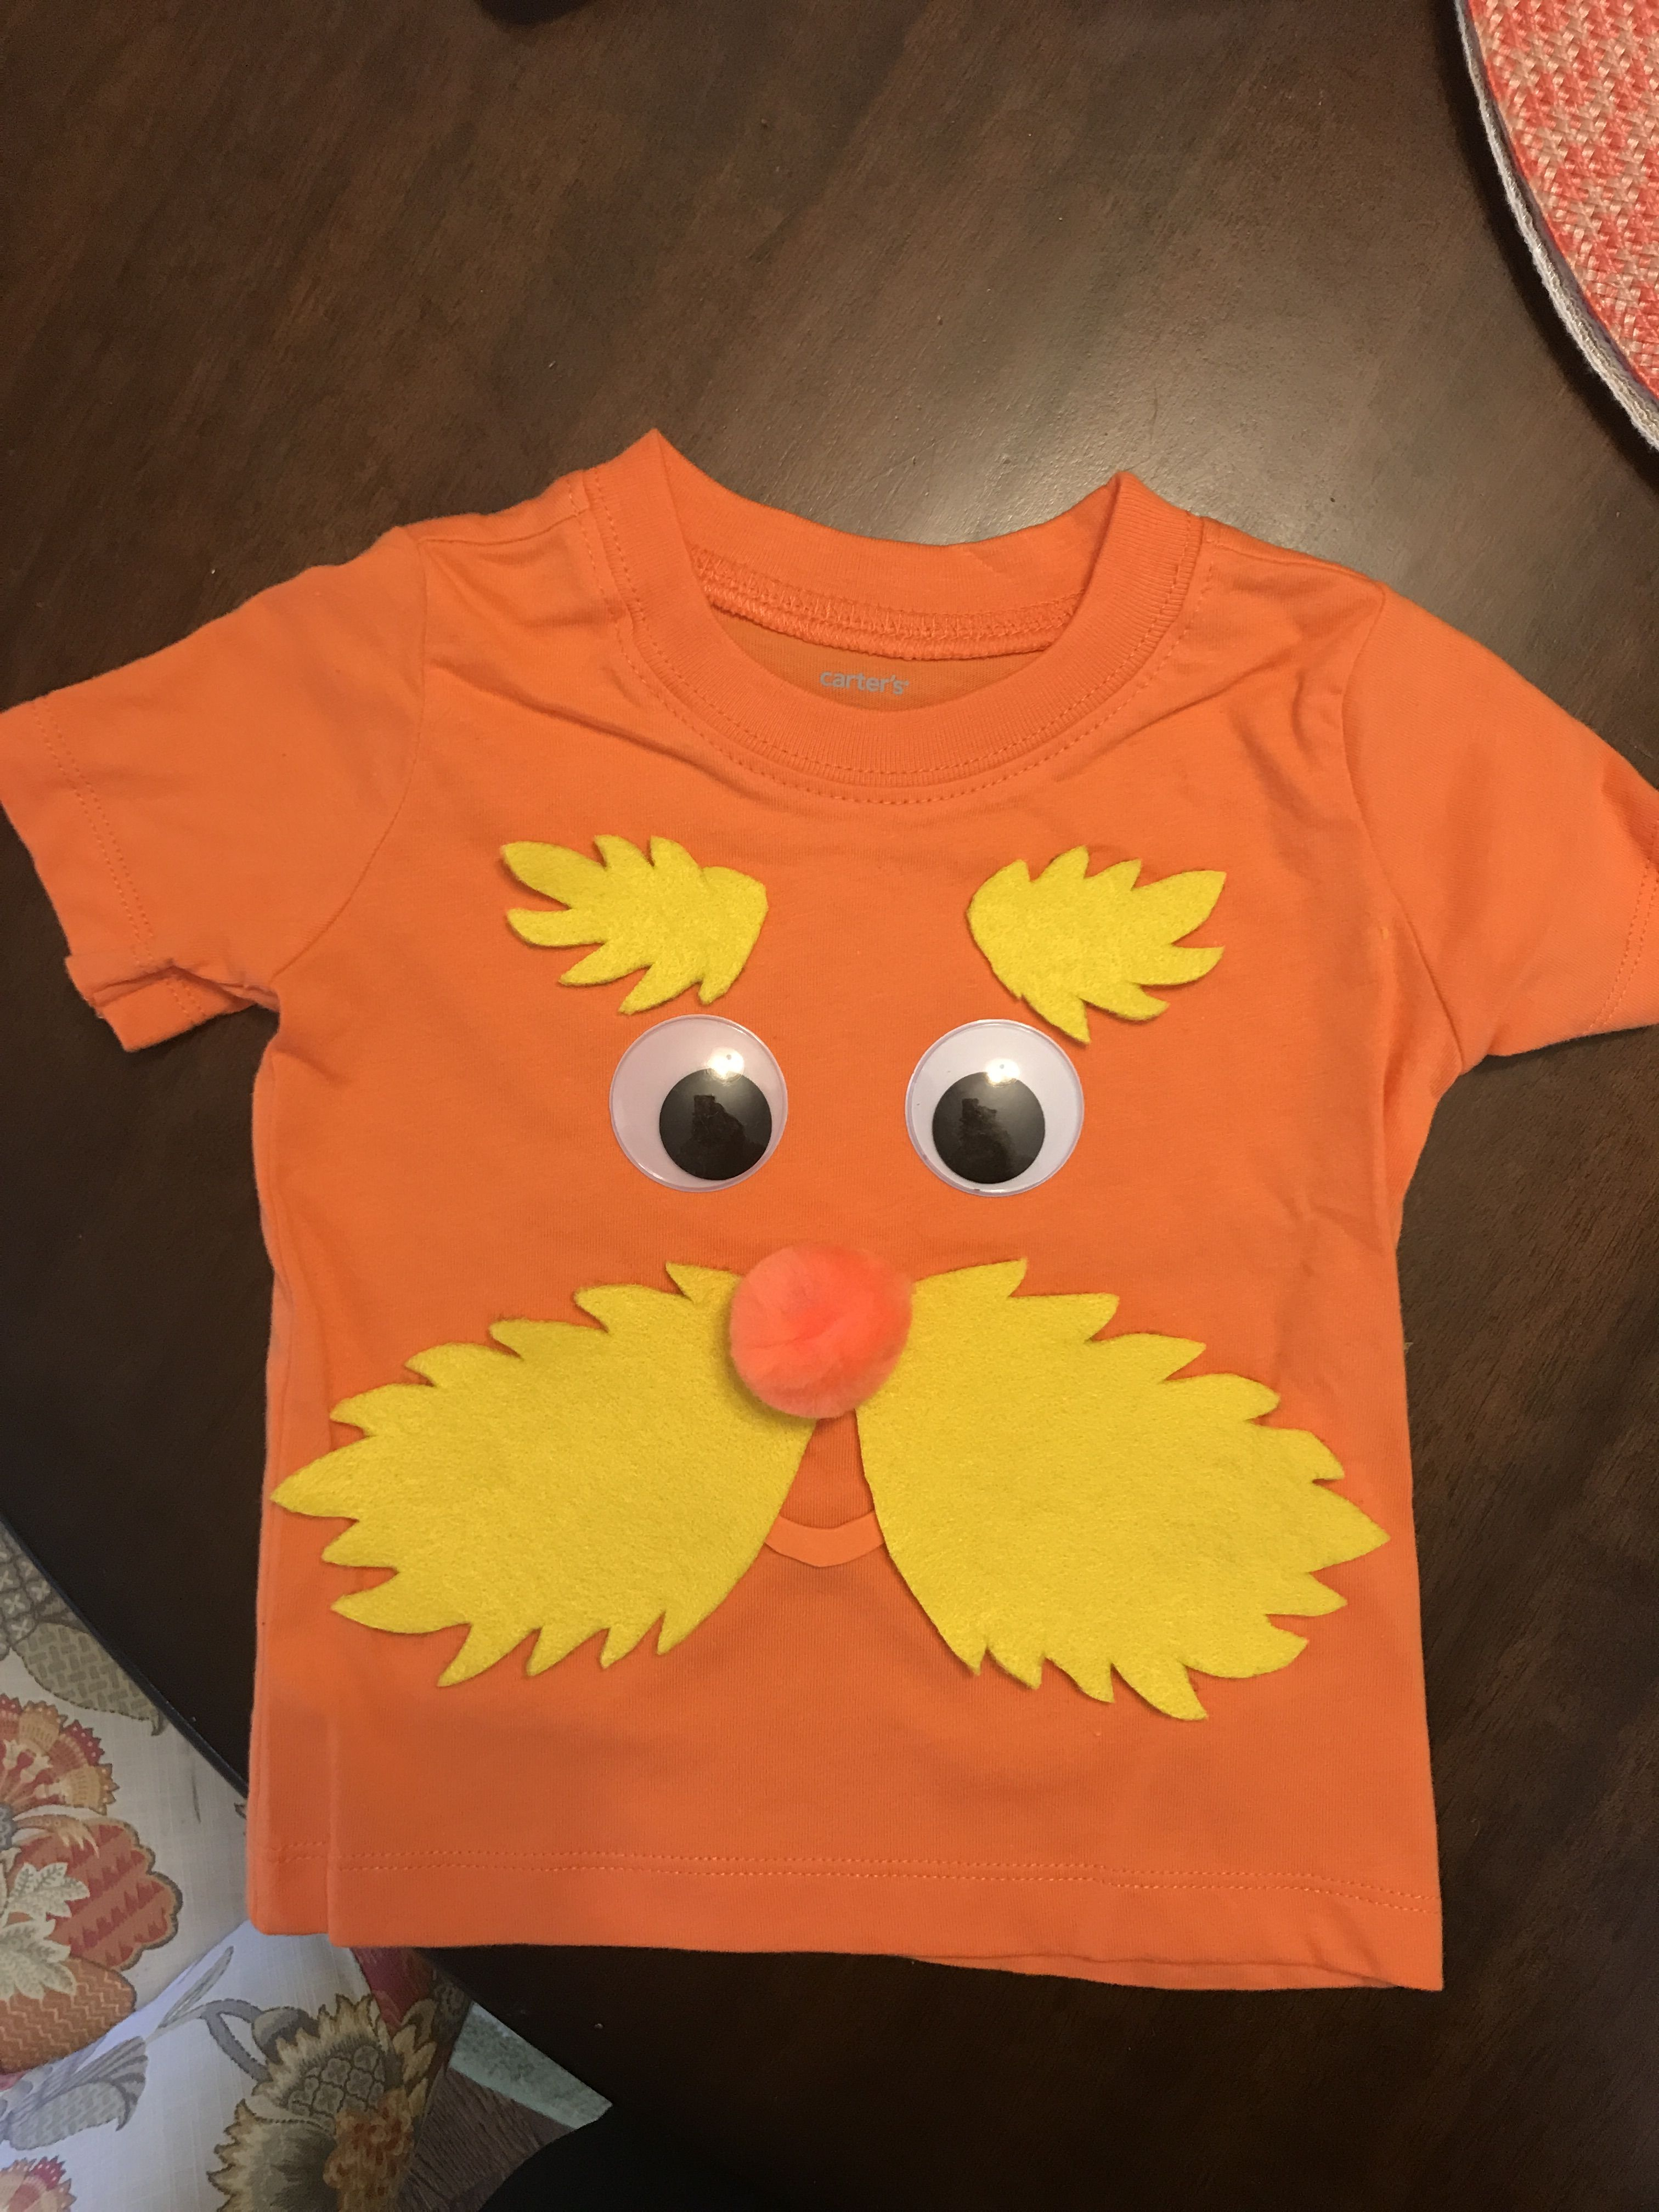 Diy lorax costume for baby dr seuss clothing diy pinterest diy lorax costume for baby dr seuss solutioingenieria Choice Image